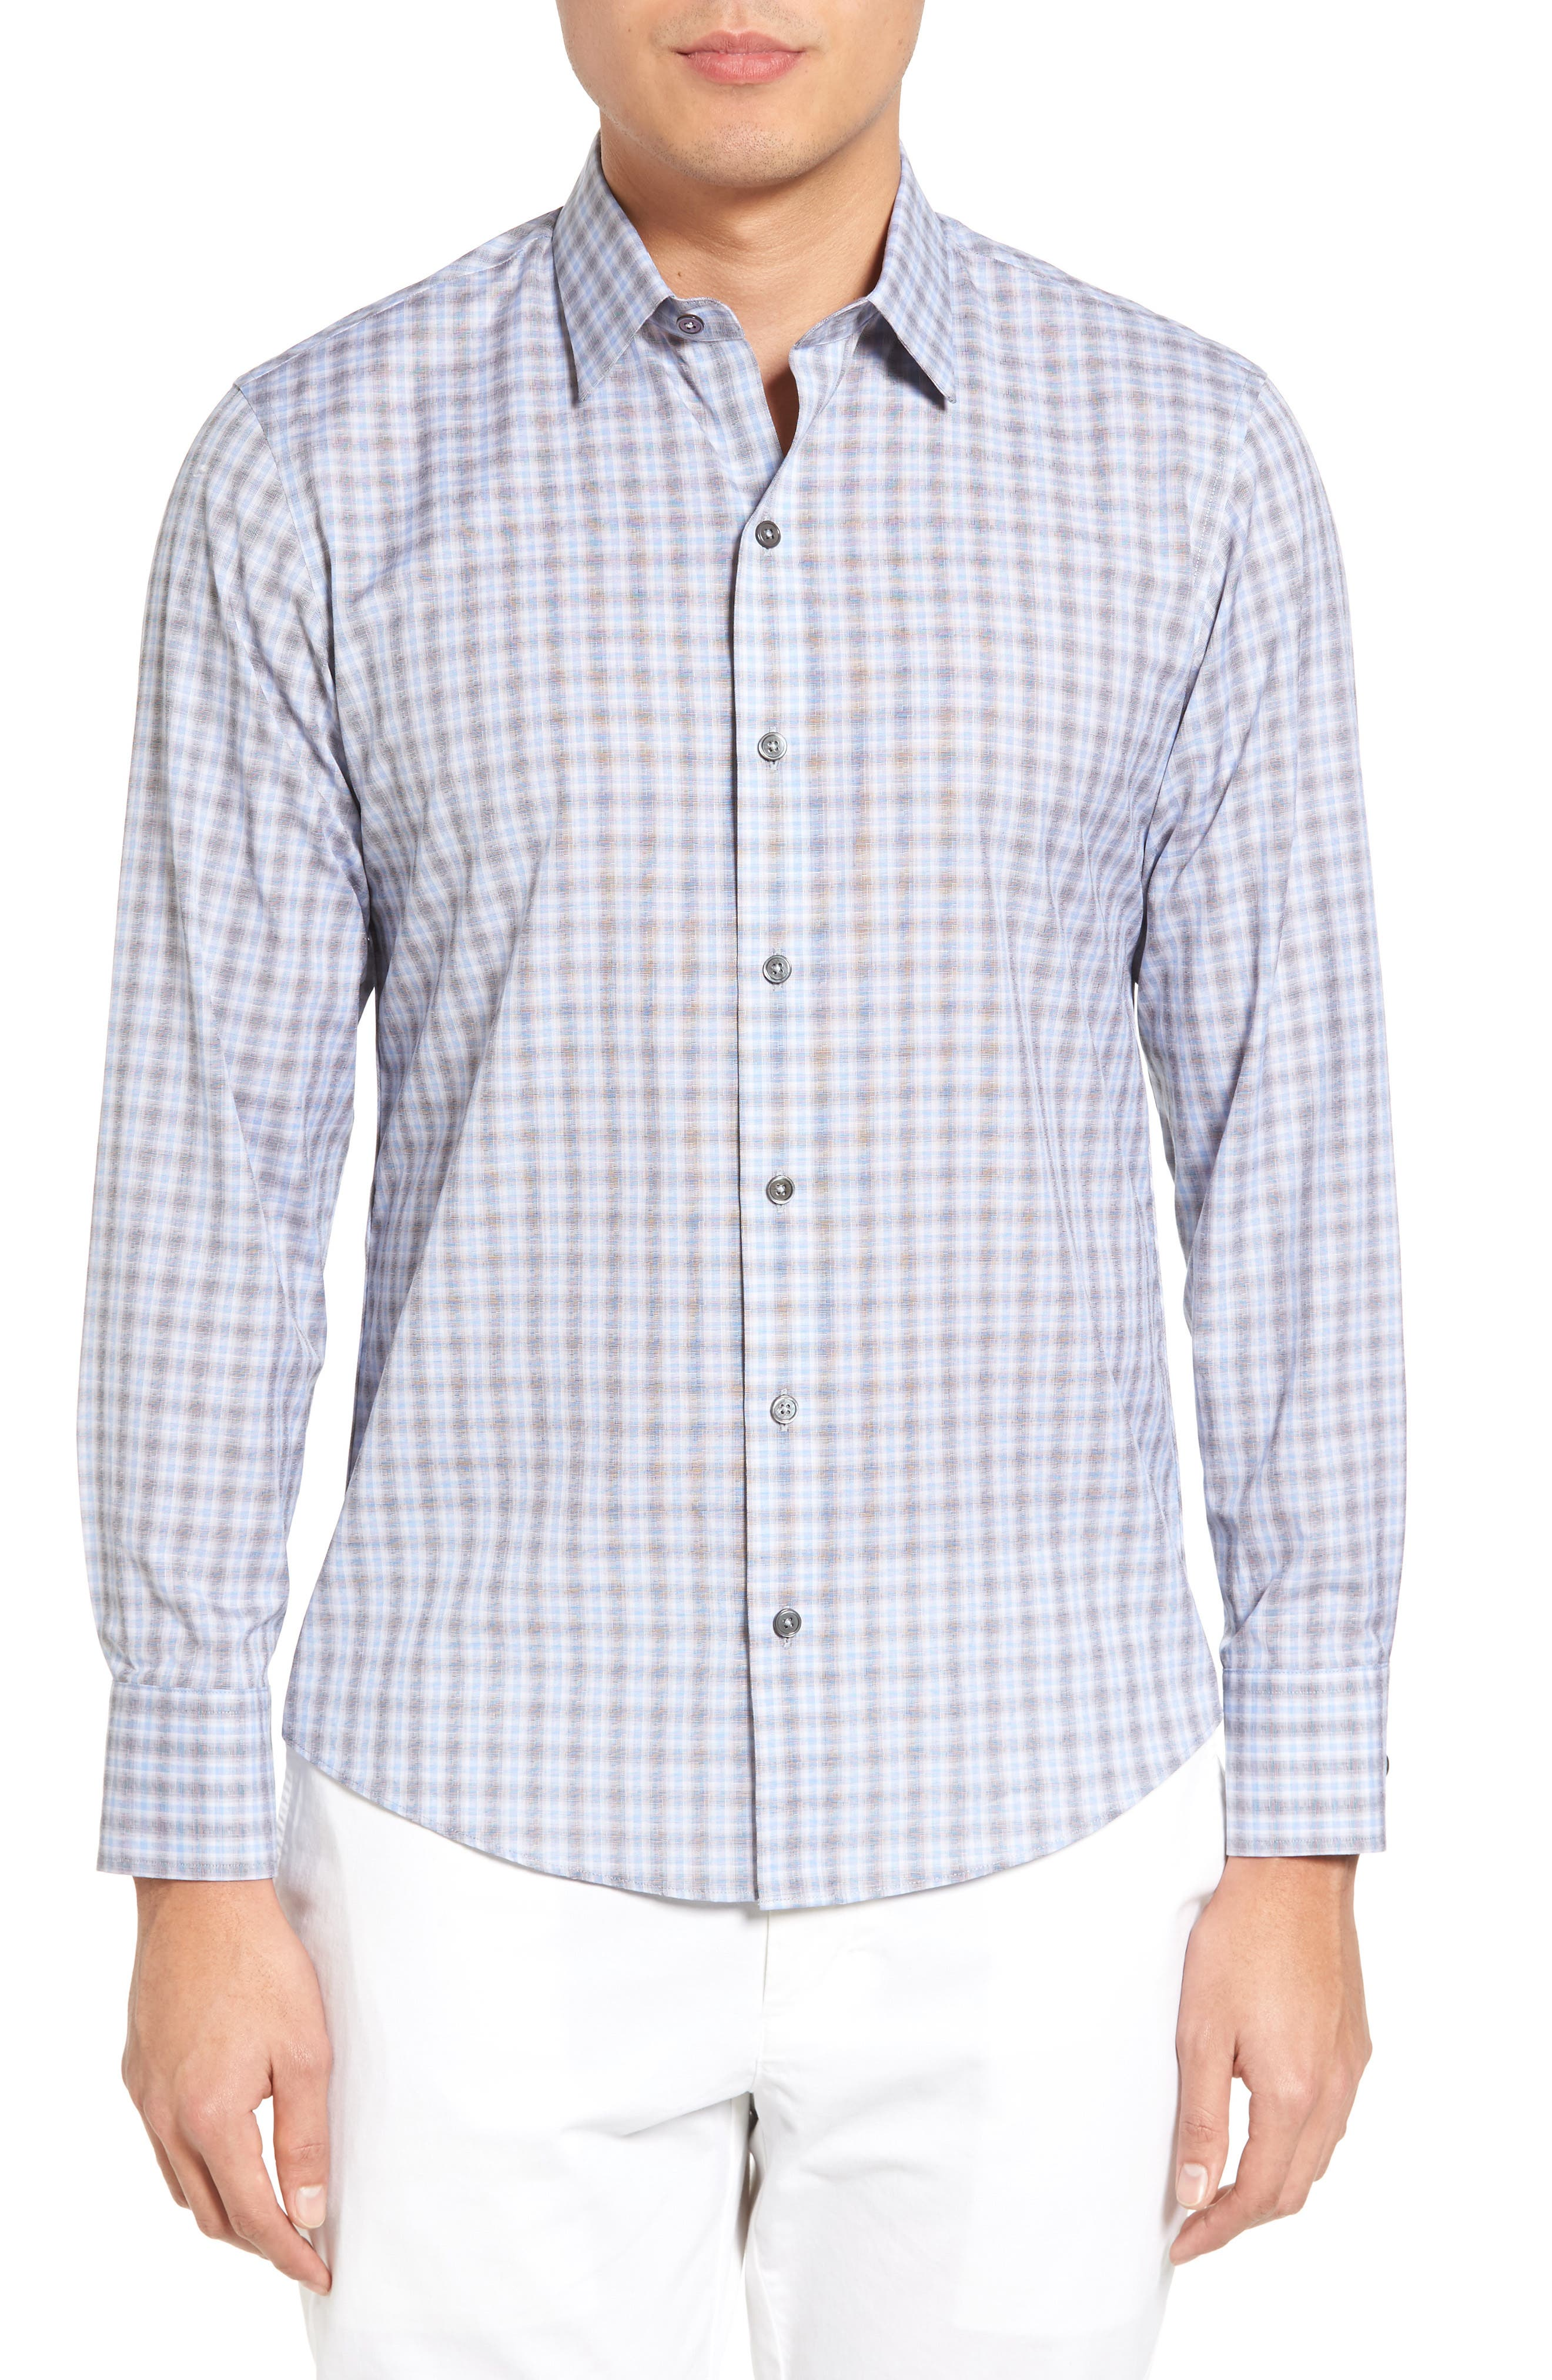 Main Image - Zachary Prell Cristiano Trim Fit Plaid Sport Shirt